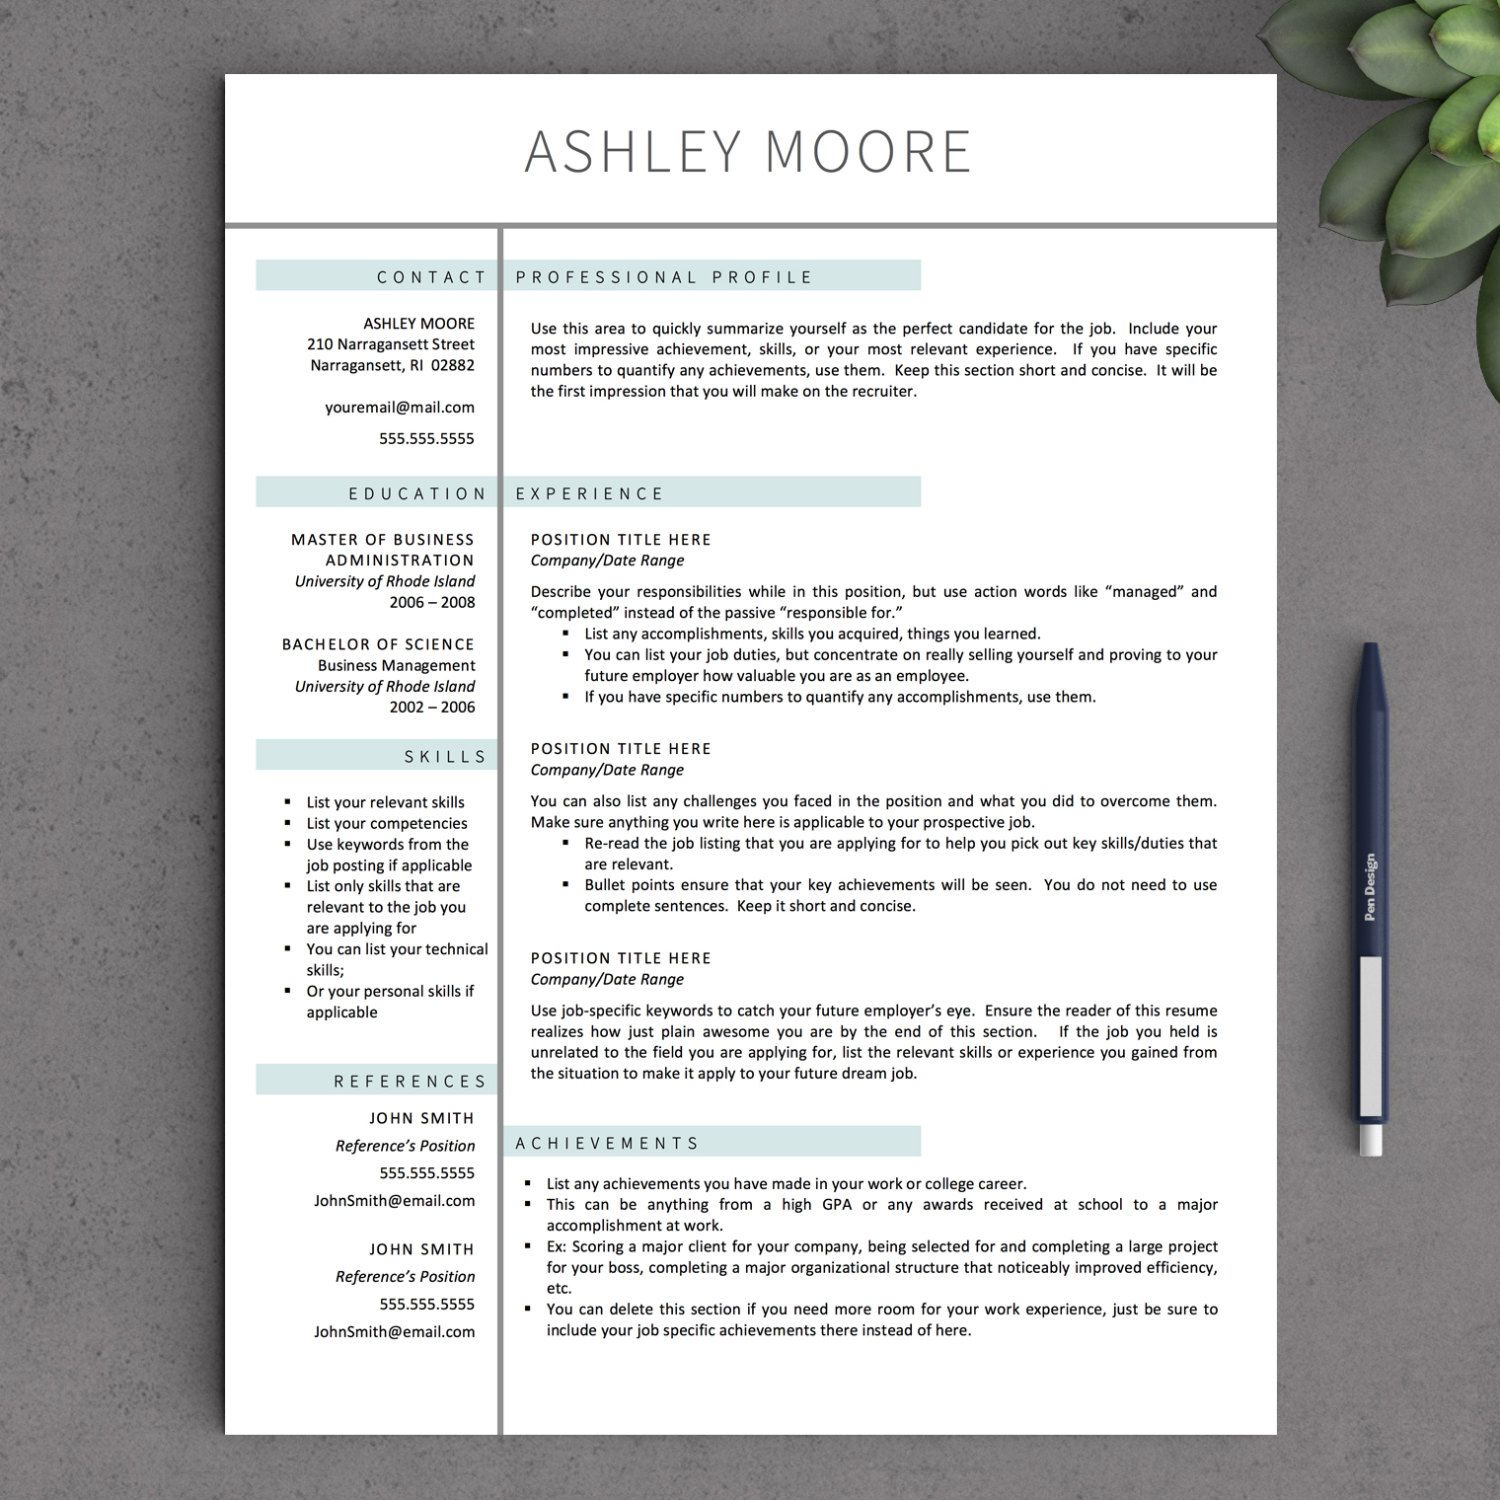 resume Resume Template Download apple pages resume template download download